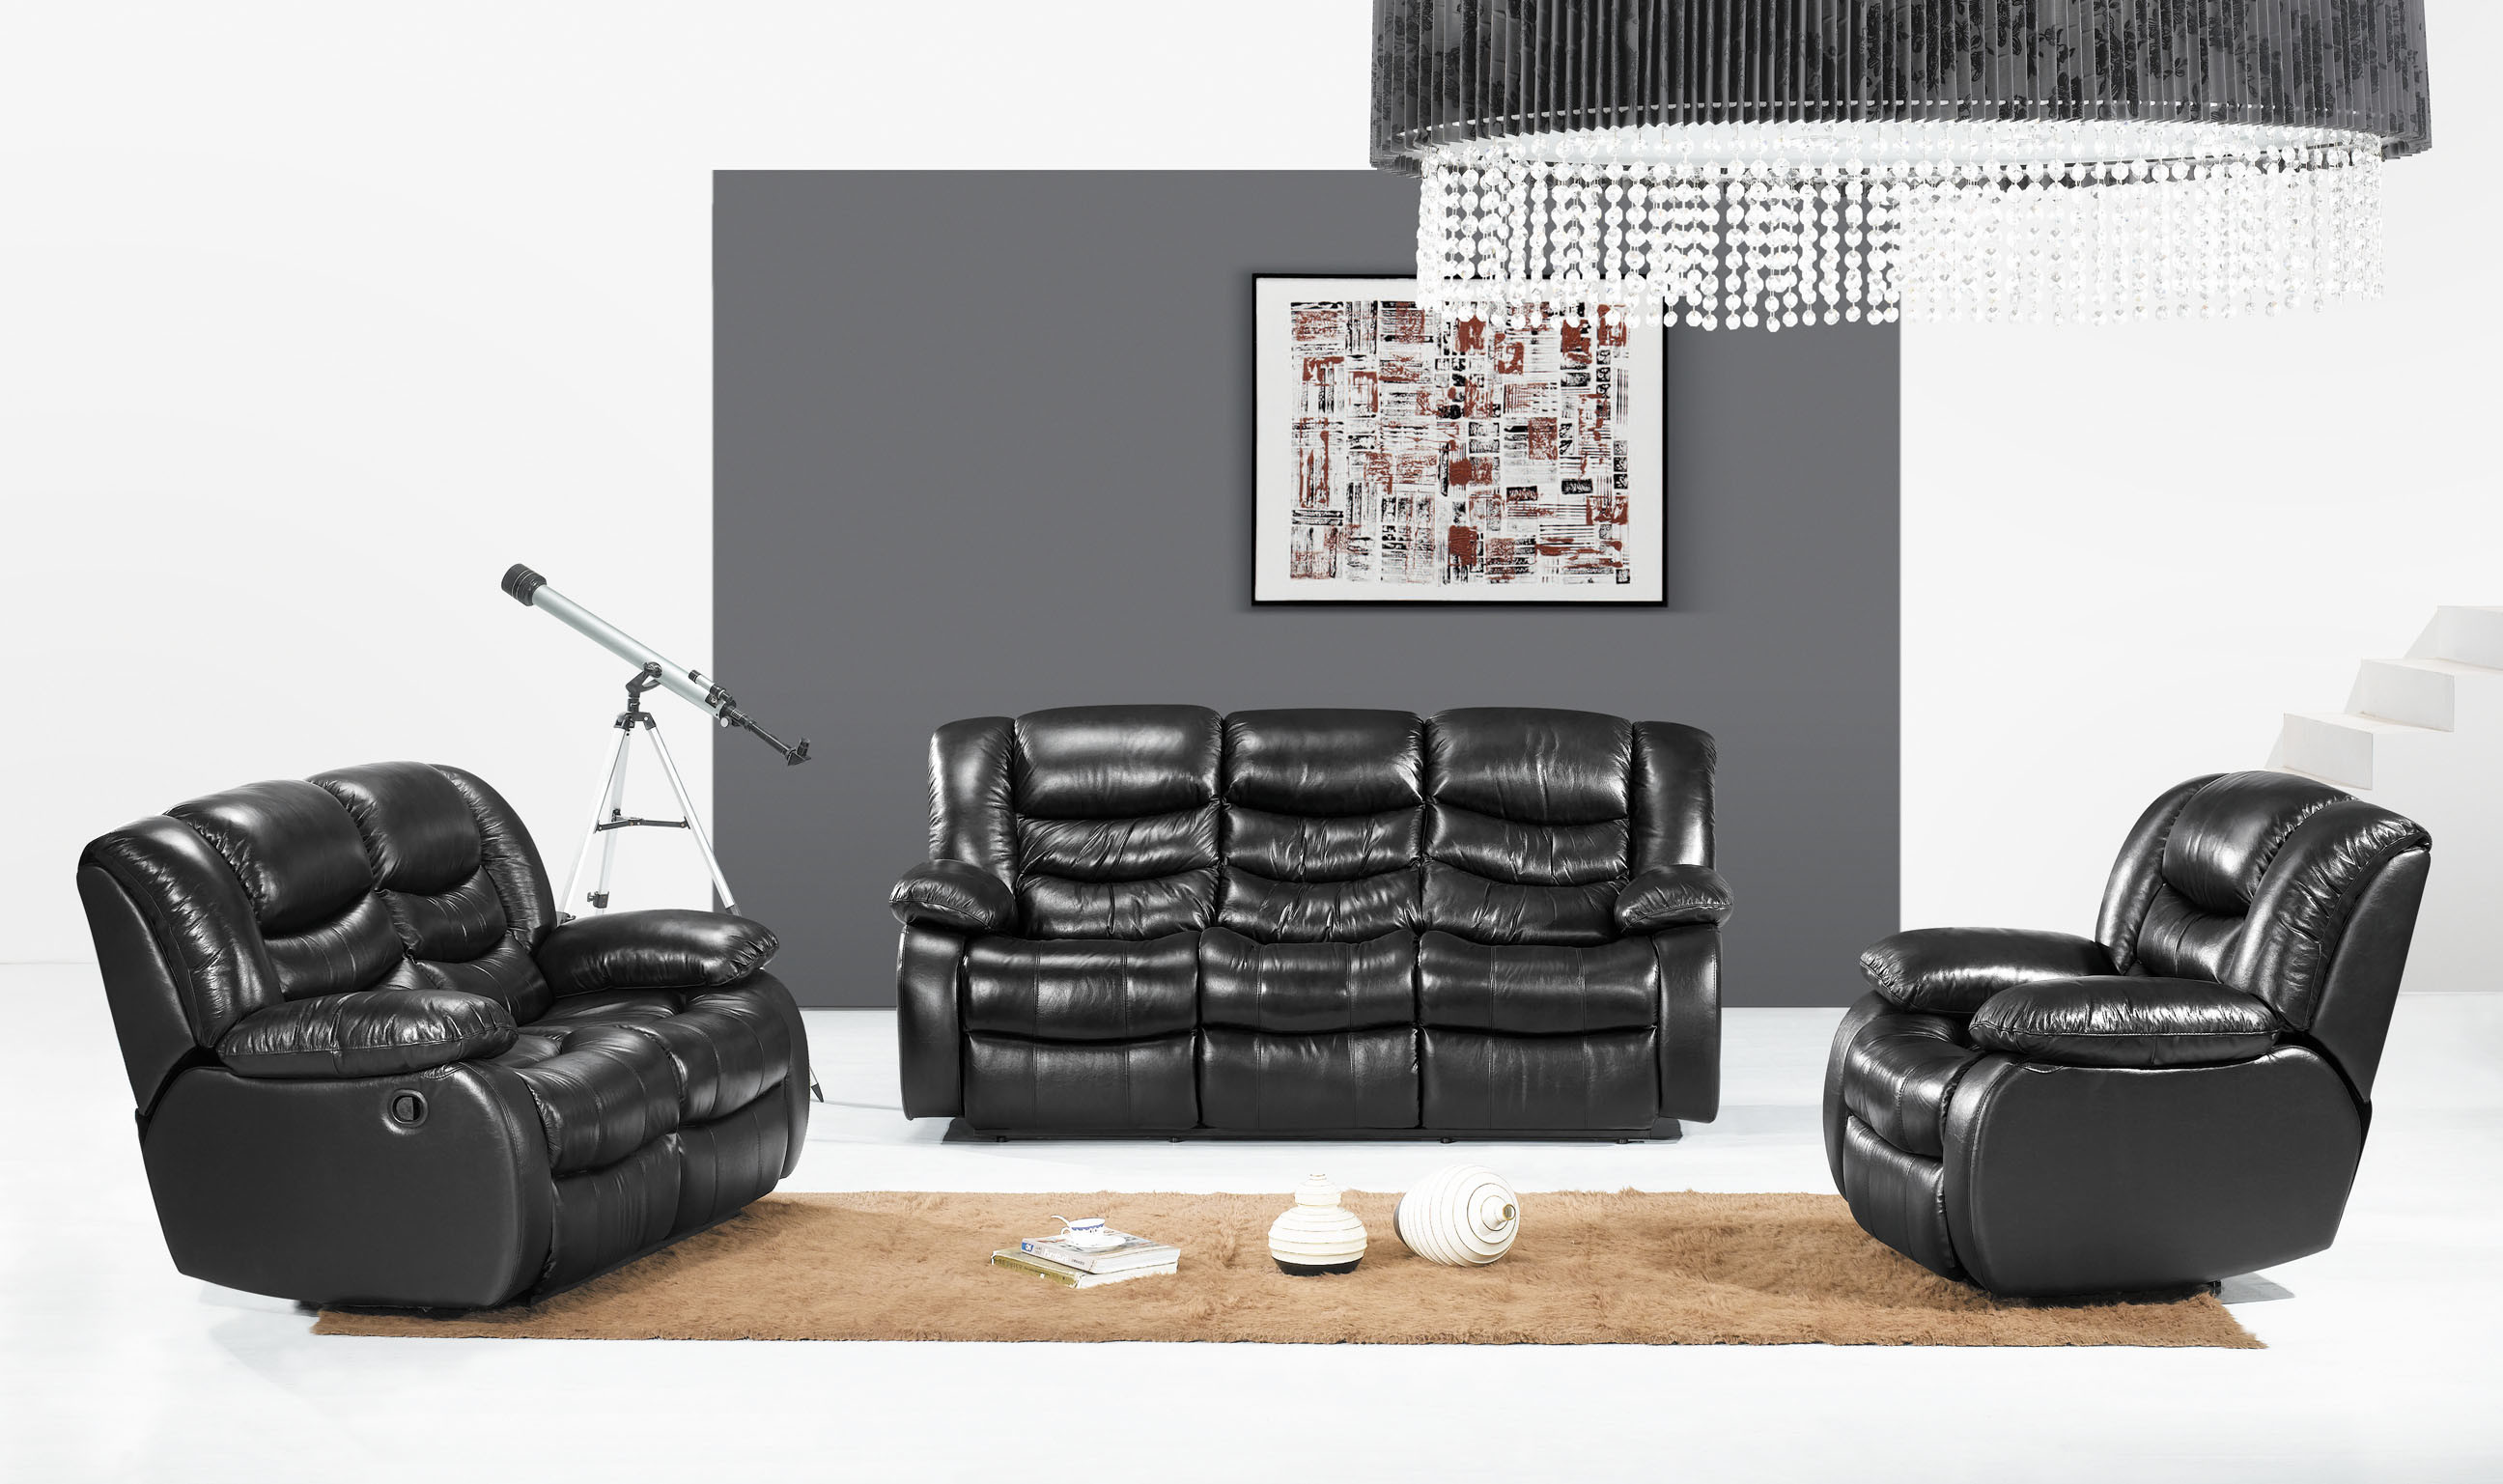 Surprising Hot Item Classical Lazy Boy Vip Cinema Seating Black Leather Recliner Sofa Cjindustries Chair Design For Home Cjindustriesco